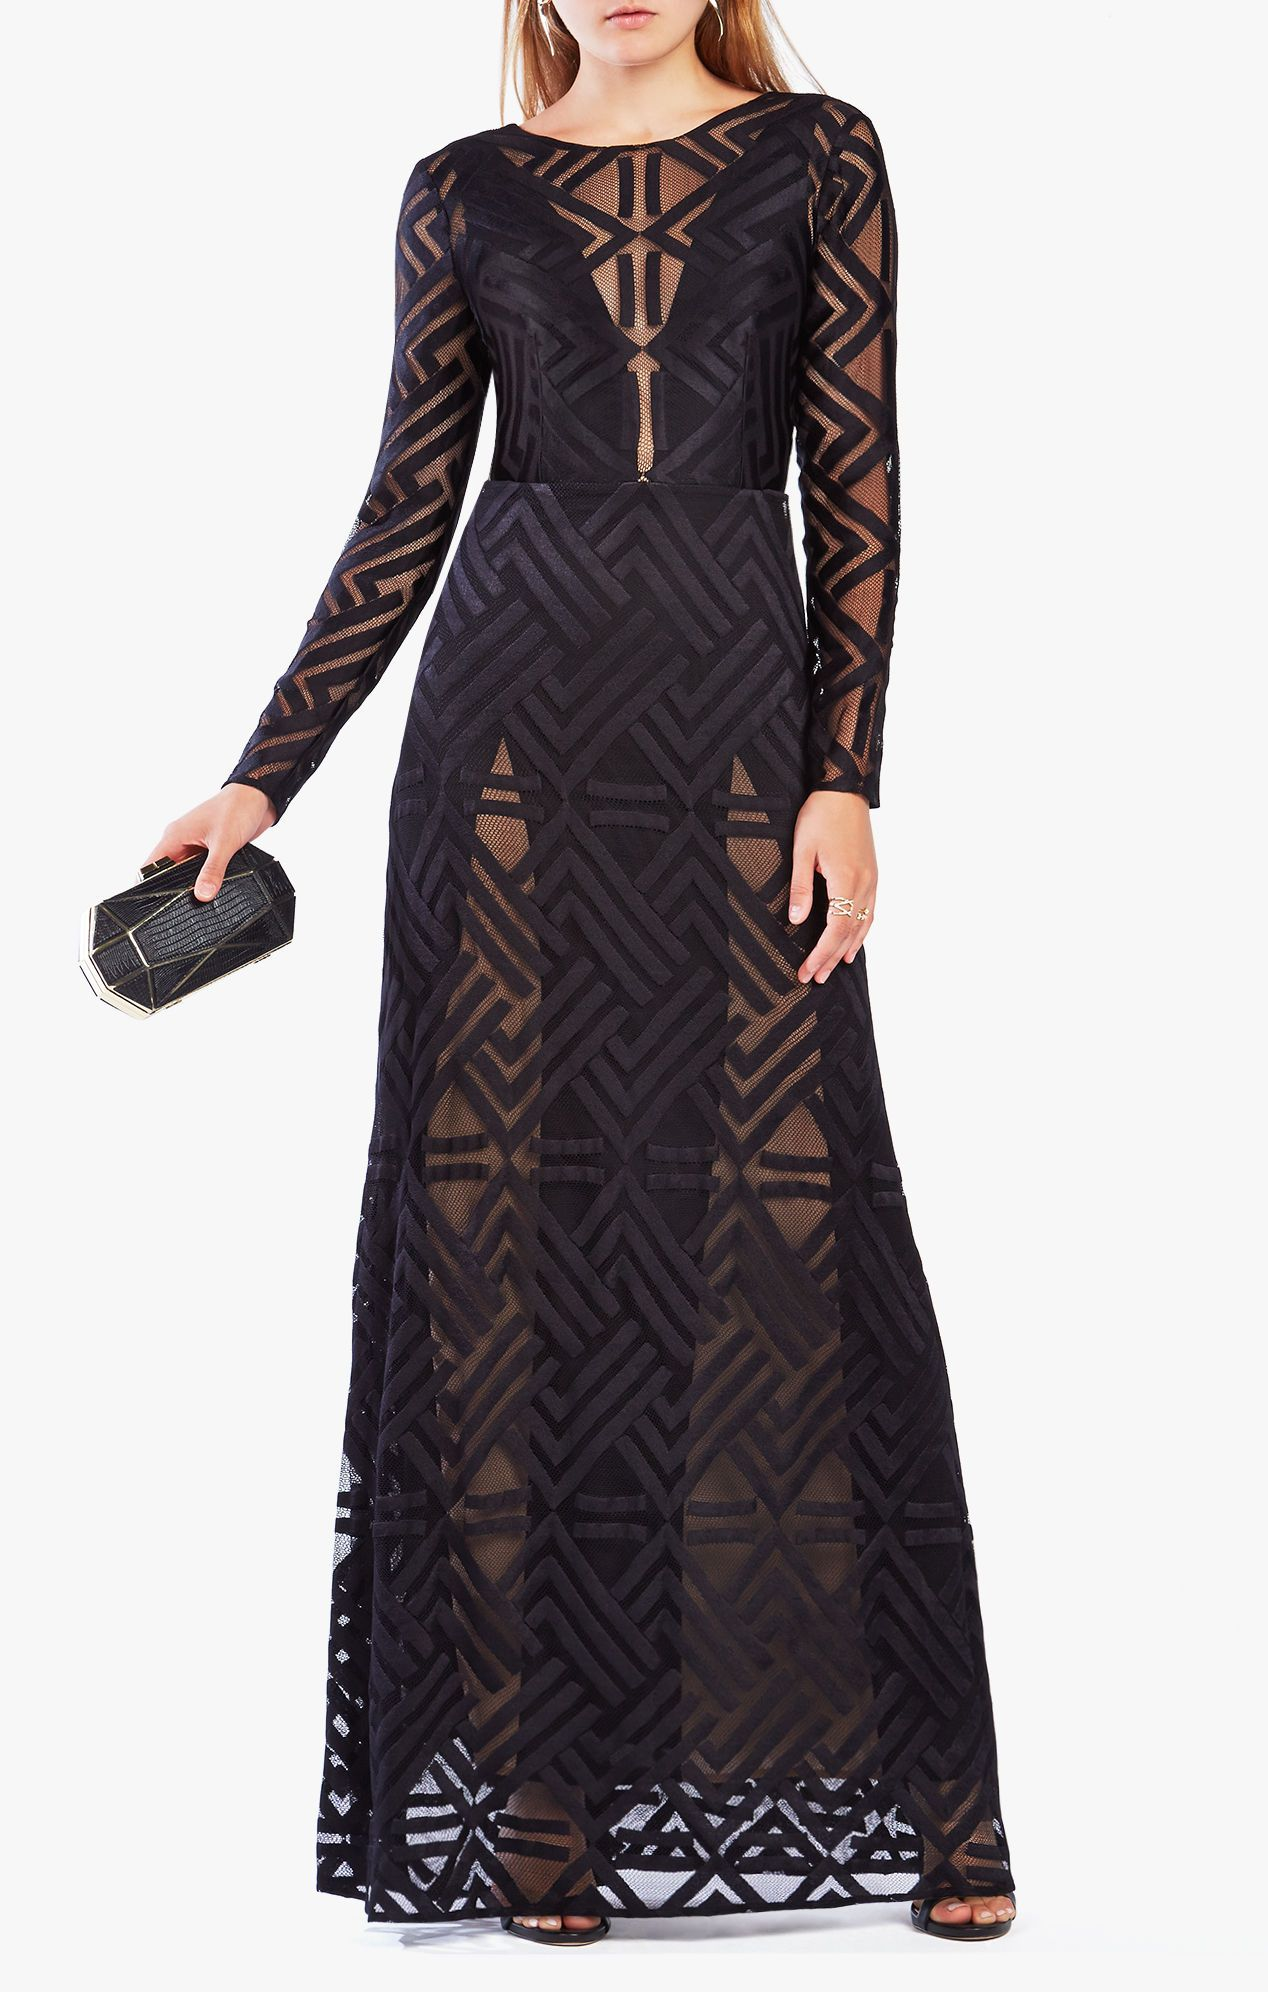 Veira lace gown my style pinboard pinterest gowns black tie